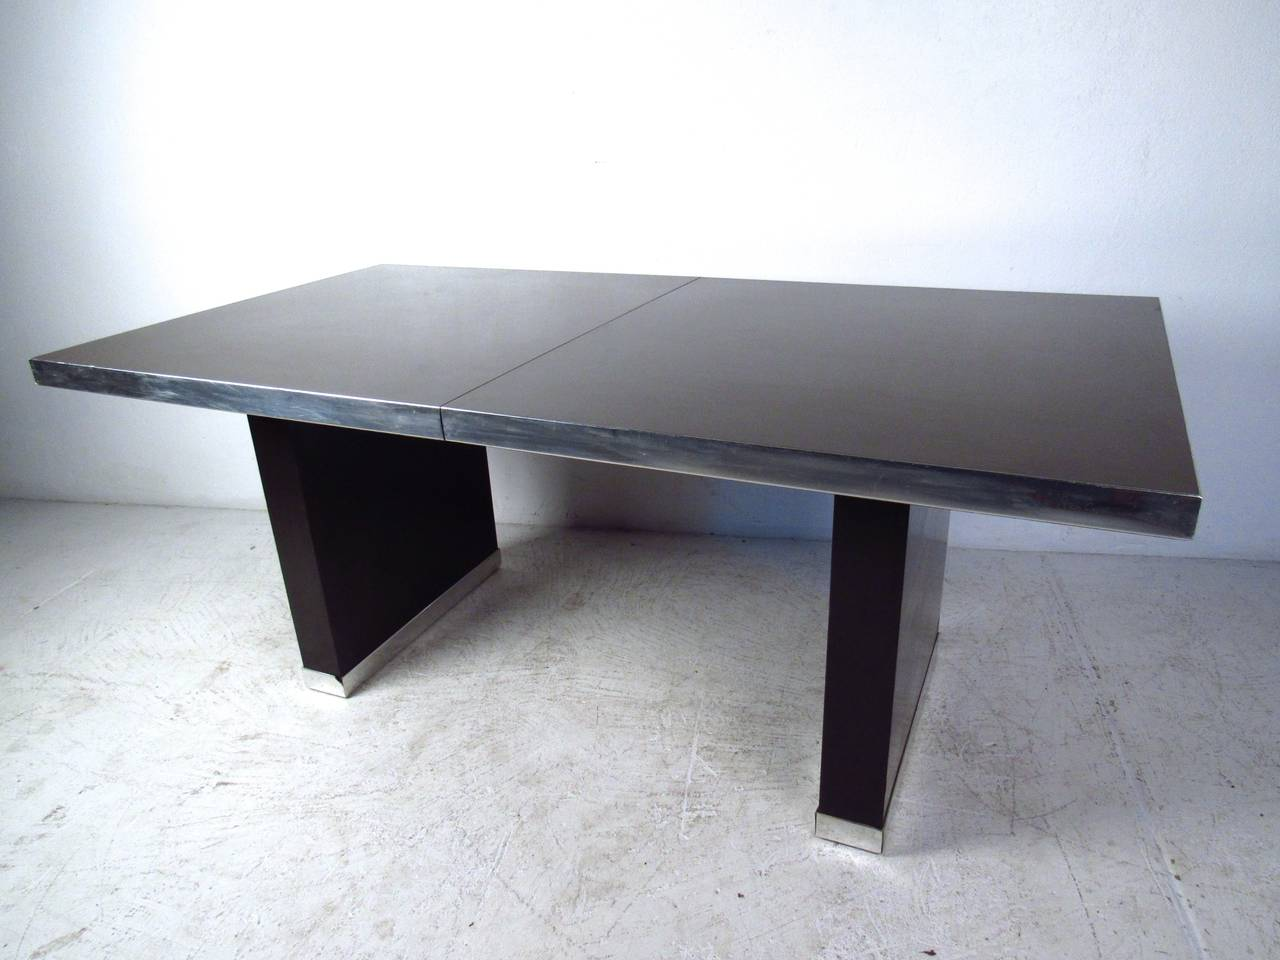 This beautiful dining table was designed by Pierre Cardin and features stylish chrome trim and two leaves for added length (20